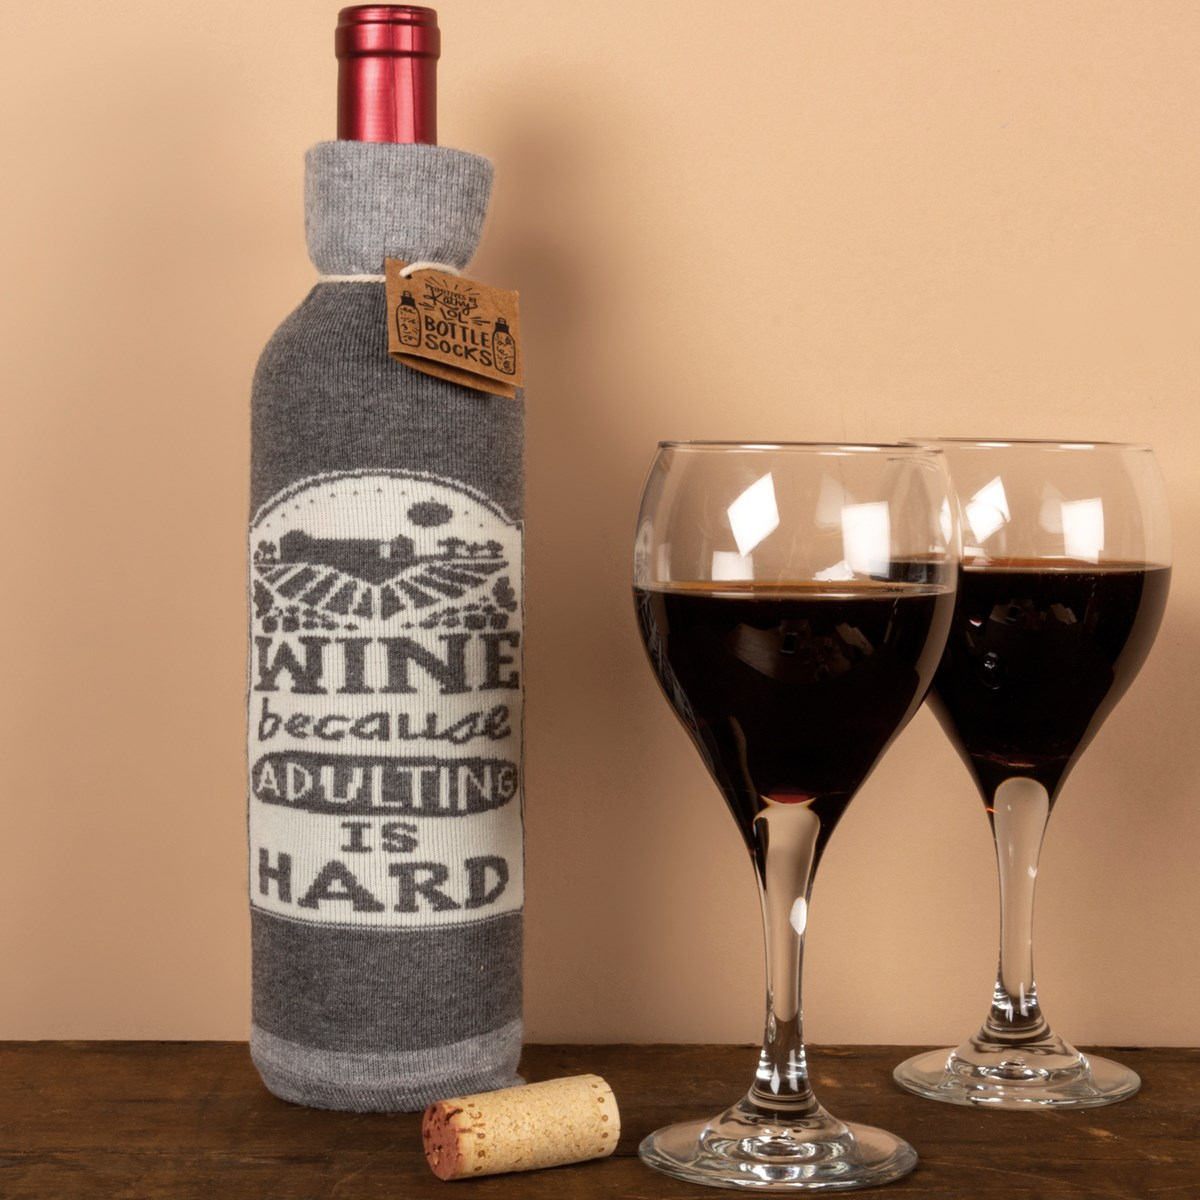 "Bottle Sock - Wine Because Adulting Is Hard - 3.50"" x 11.25"", Fits 750mL to 1.5L bottles - Cotton, Nylon, Spandex"